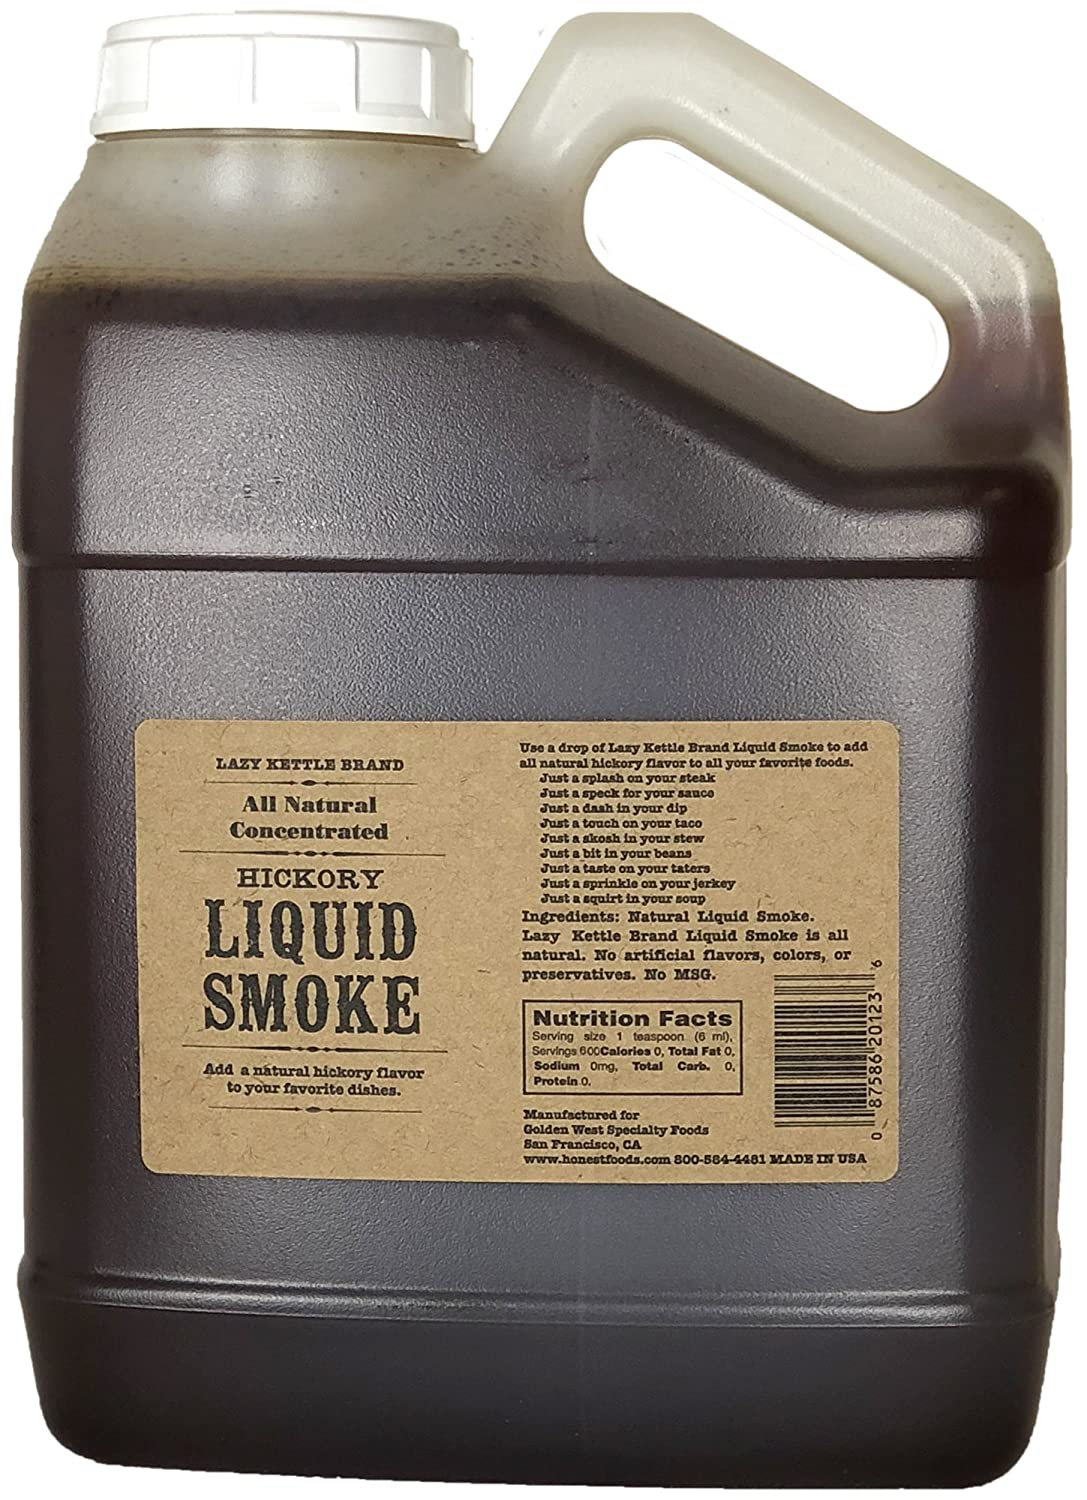 Lazy Kettle All-Natural Liquid Smoke, Hickory Smoke Great for Cooking 128 oz